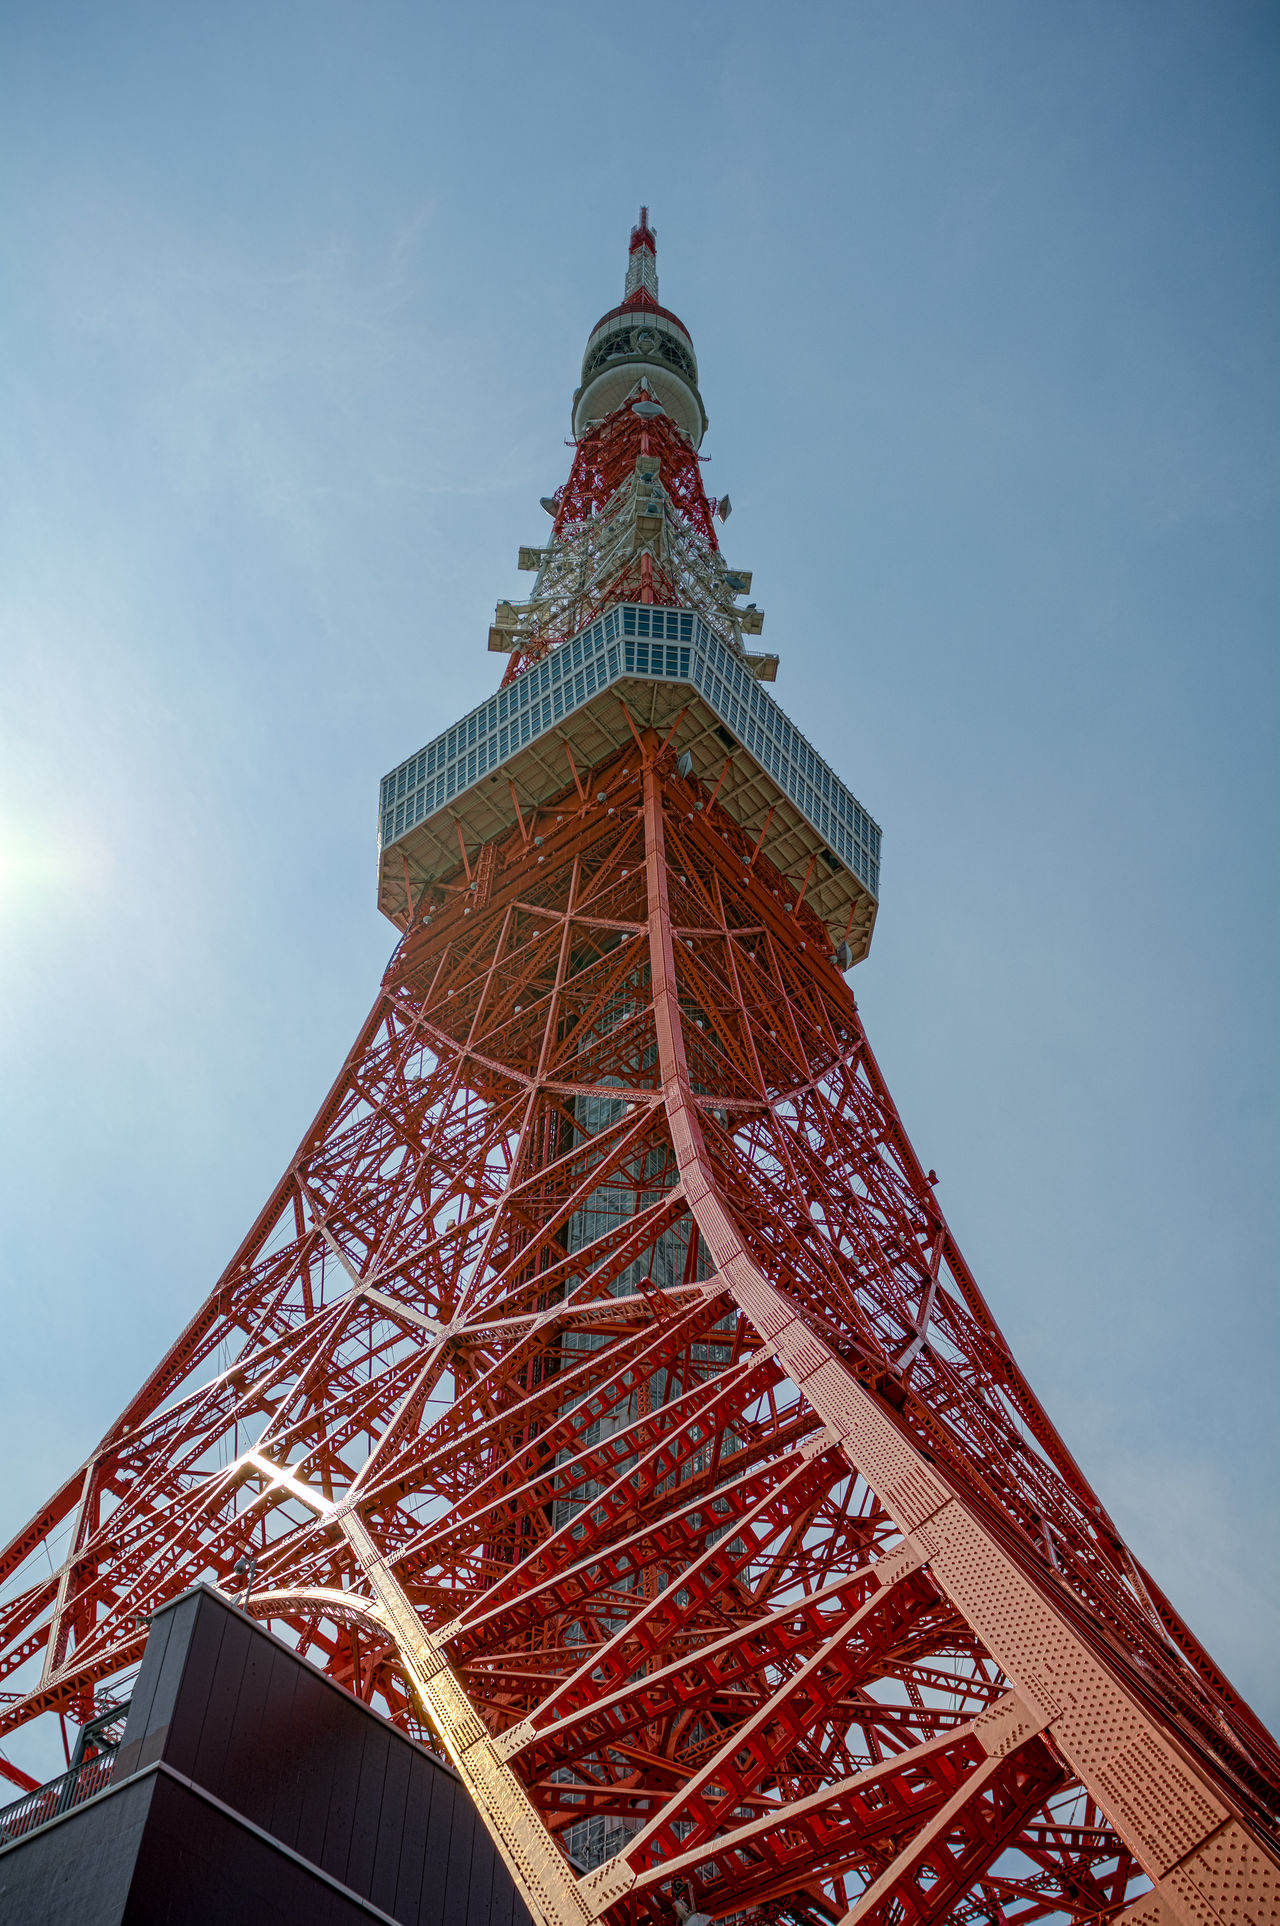 Tokyo Tower in Japan Architecture Arts Culture And Entertainment Blue Sky Building Building Exterior Built Structure Capital Cities  Clear Sky International Landmark Japan Japanese  Low Angle View Tall Tall - High Tokyo Tower Tower Towers Zojojitemple